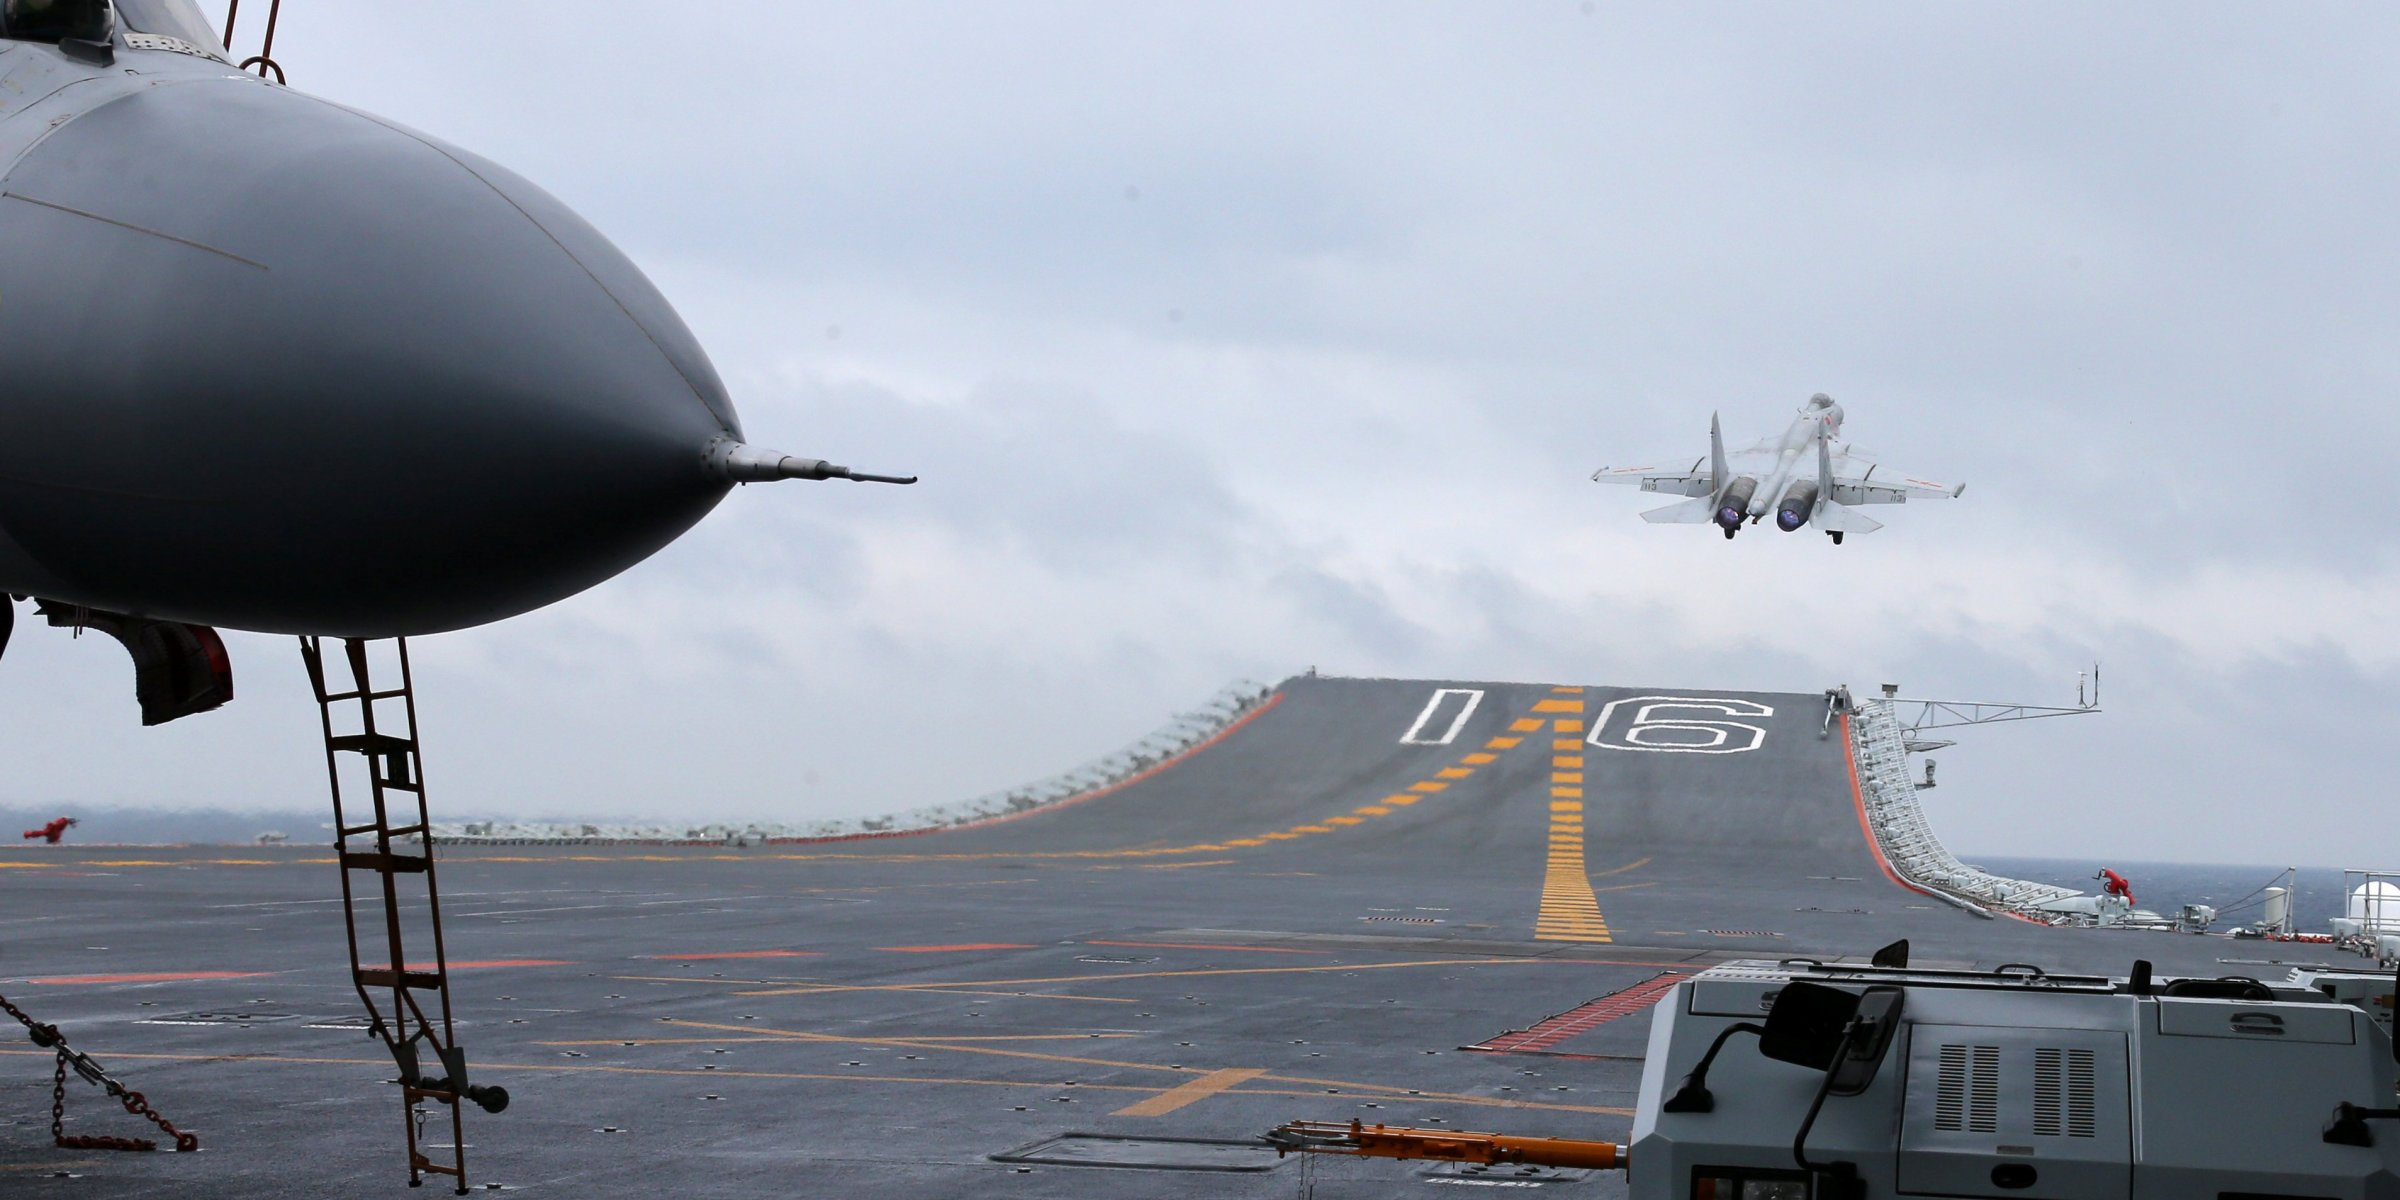 If China's 'Carrier Killer' Missiles Work, it's Making One of the Dumbest Moves of the Century